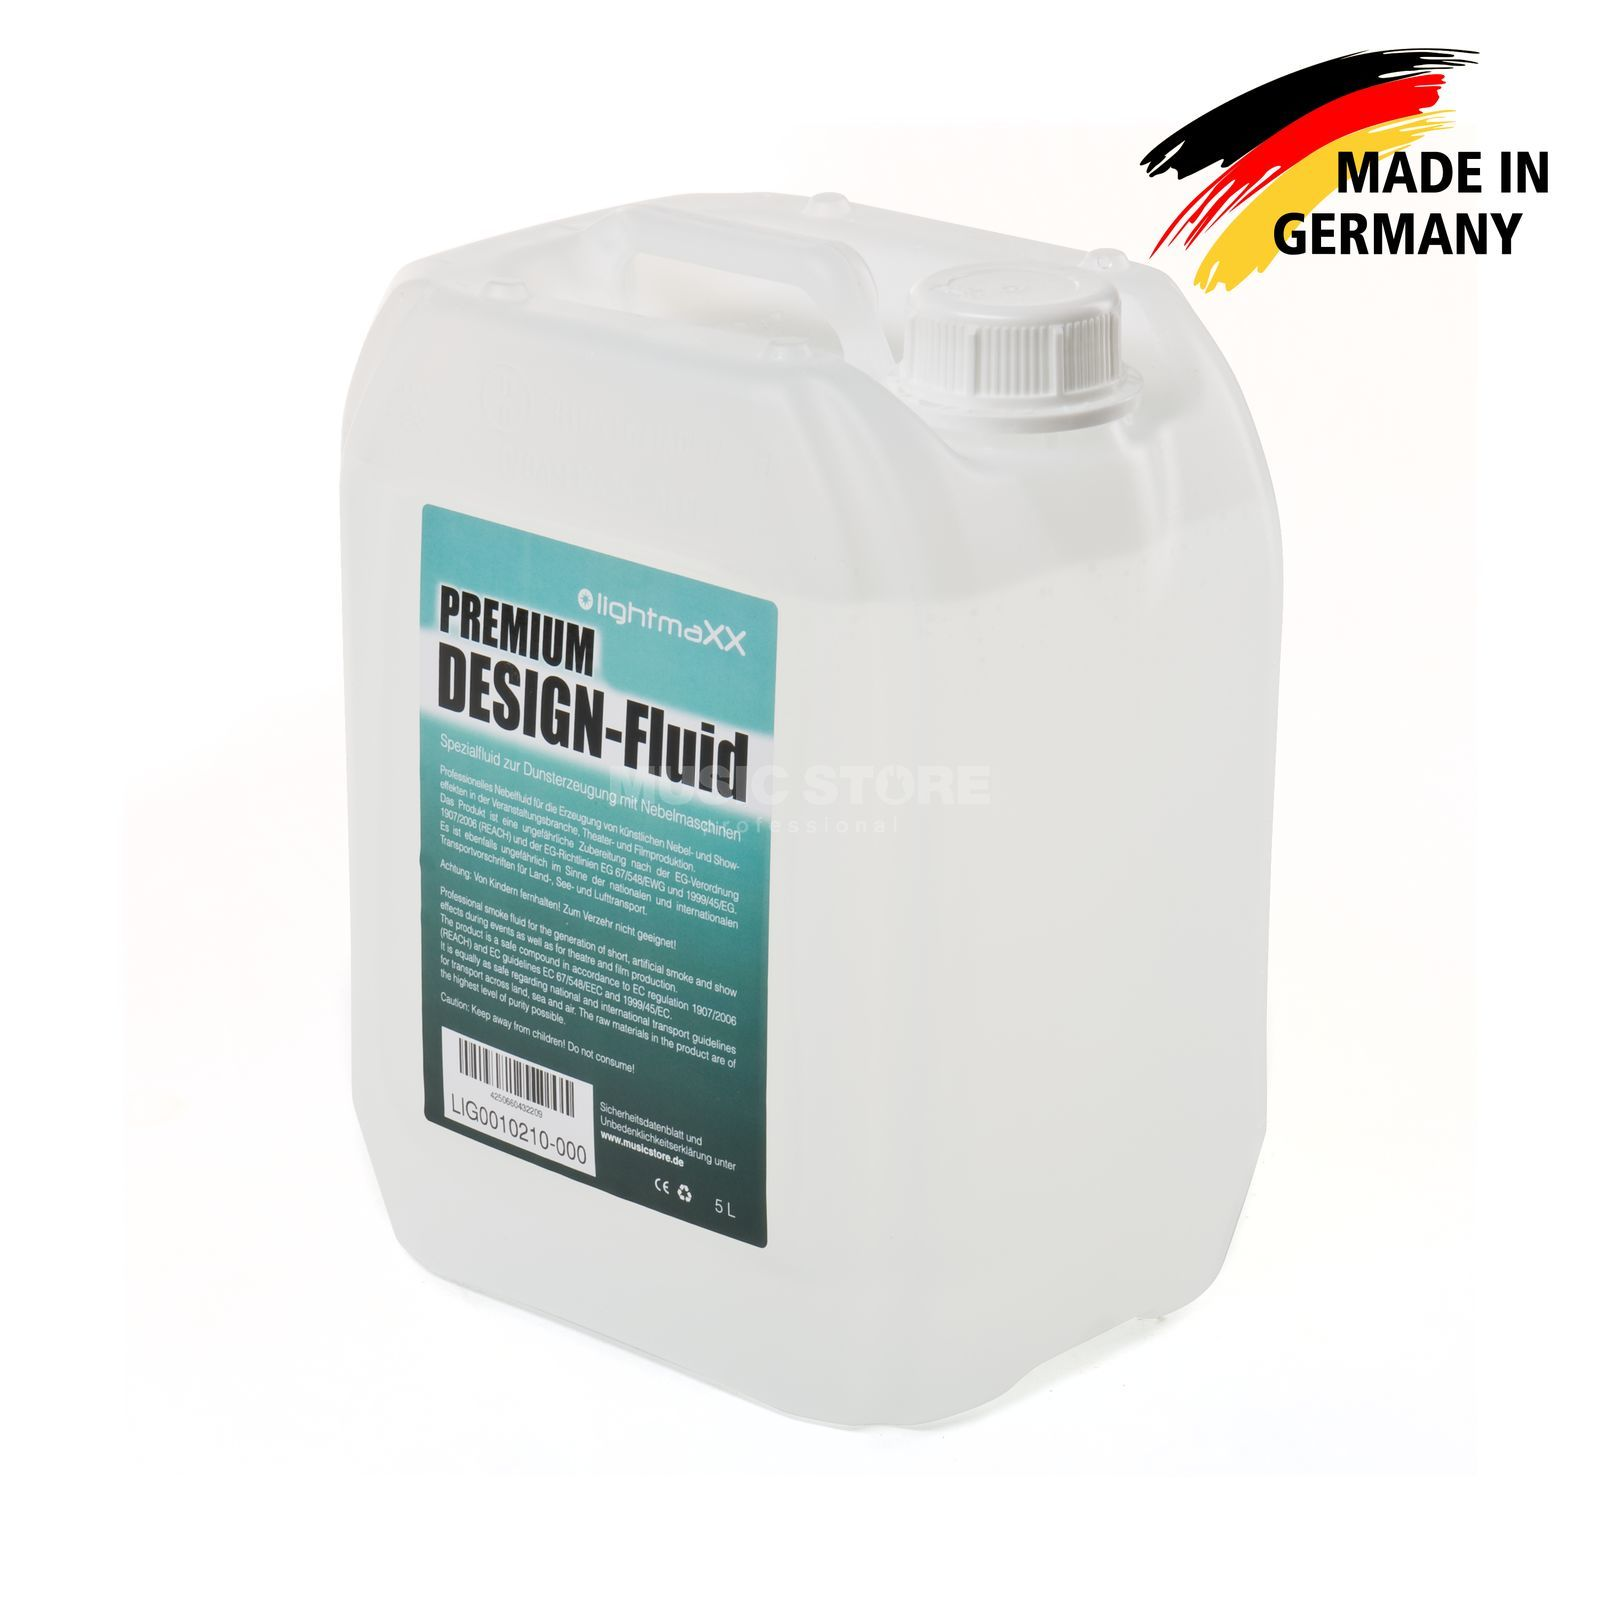 lightmaXX Premium Design Fluid Very Fine Fog, 5L Produktbillede